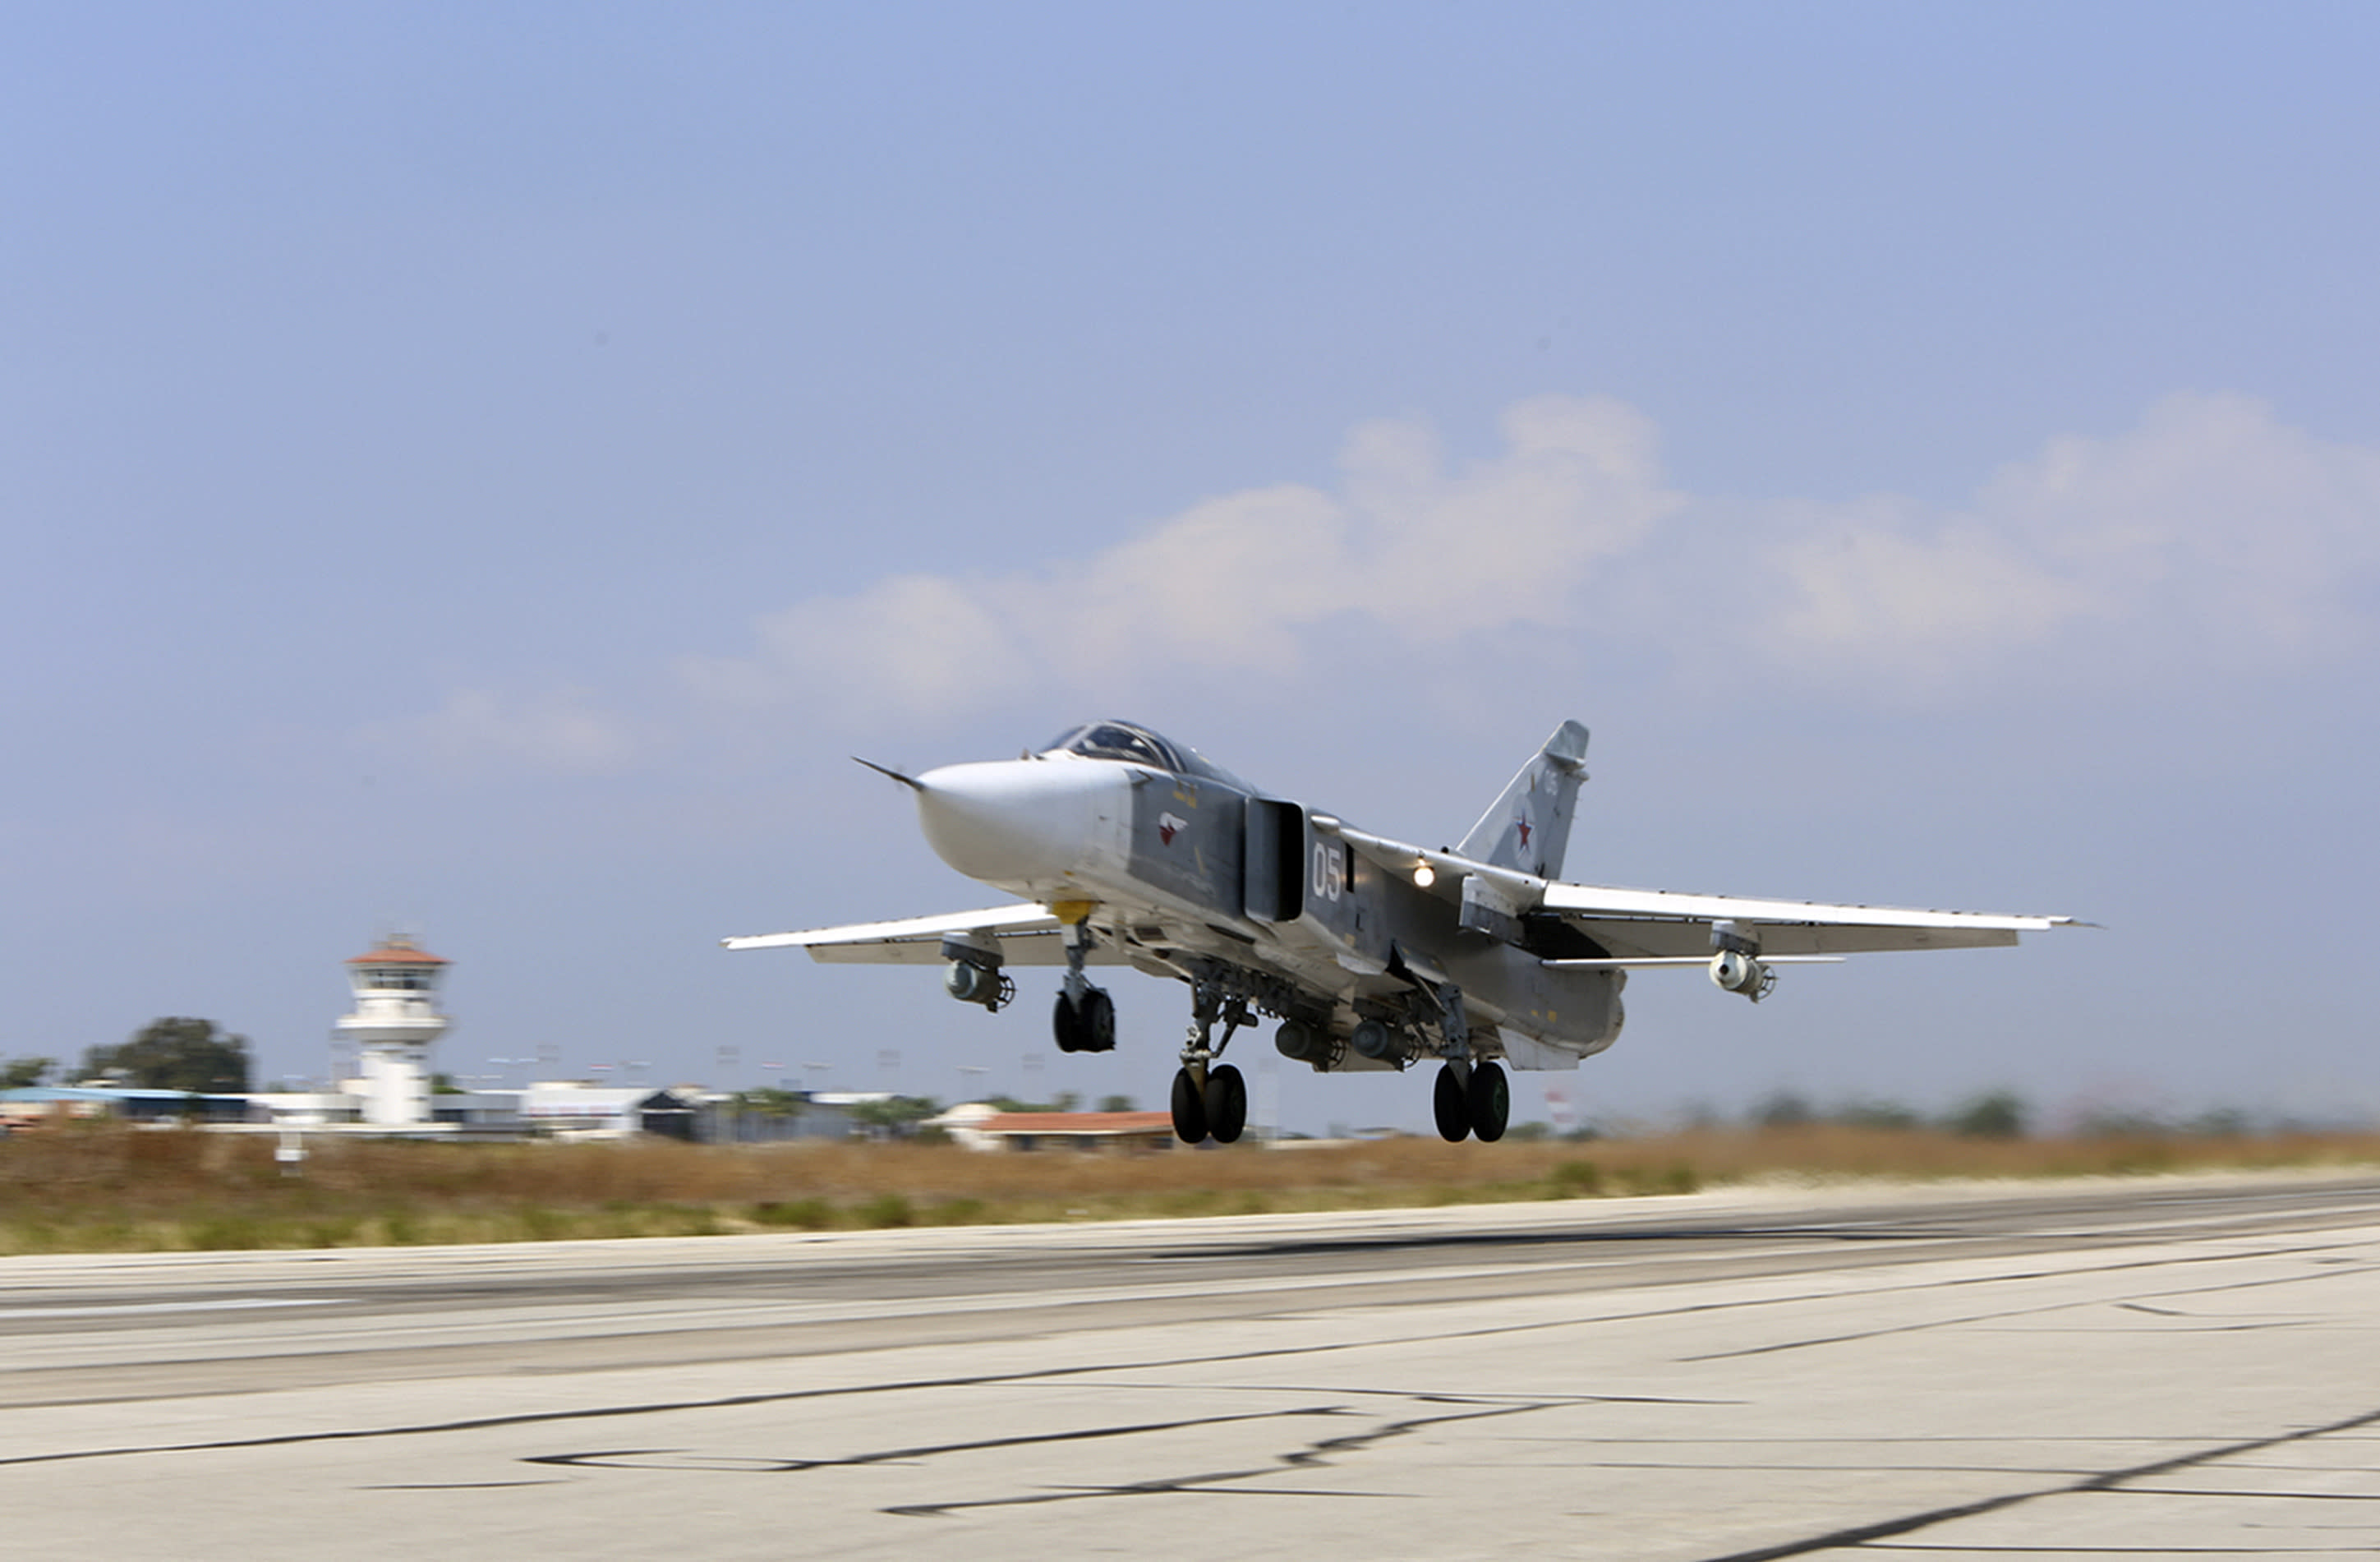 Syria's skies crowded with multiple air forces